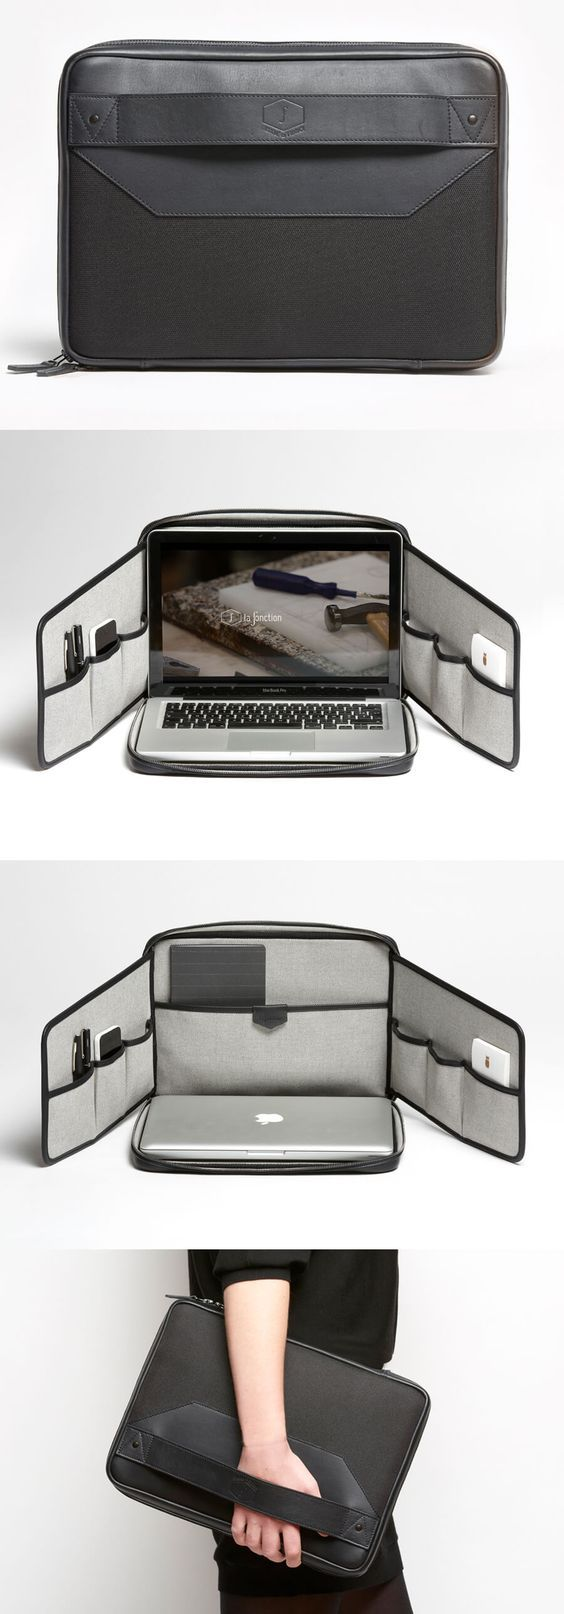 F01.2 (black) laptop bag/stand